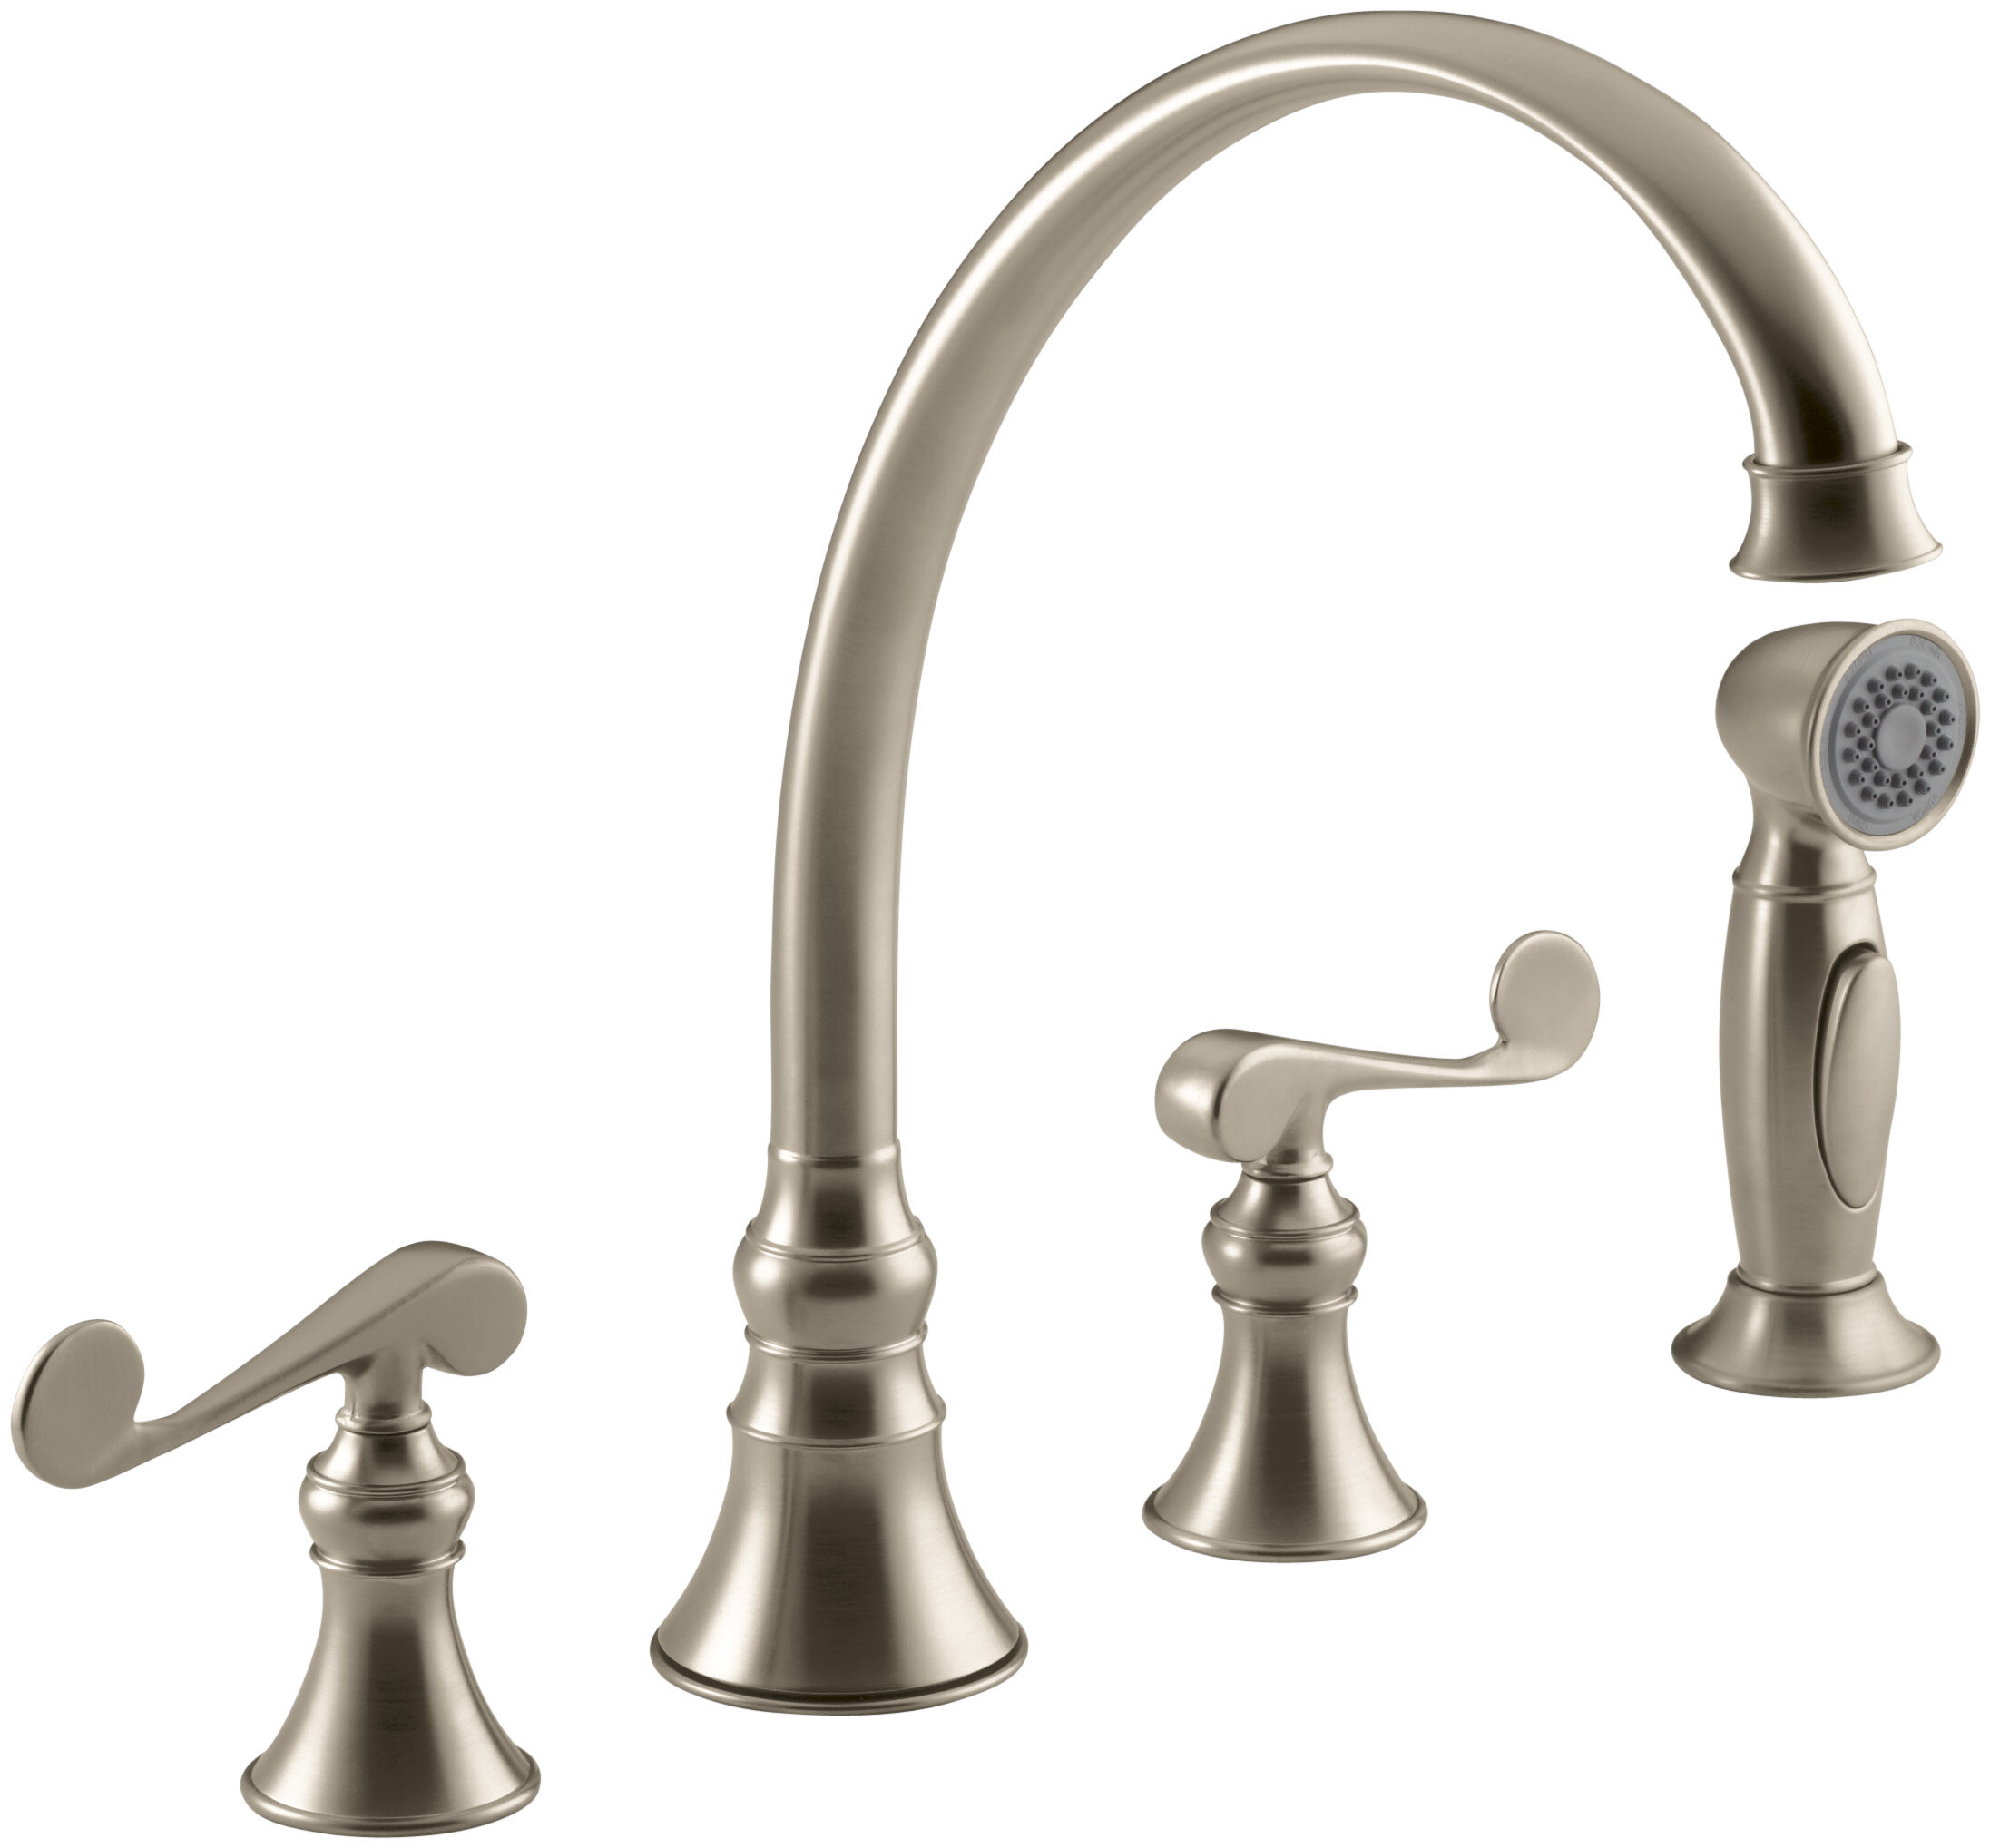 Kohler Revival 4 Hole Kitchen Sink Faucet With 9 3 16 Spout Matching Finish Sidespray And Scroll Lever Handles Reviews Wayfair Ca